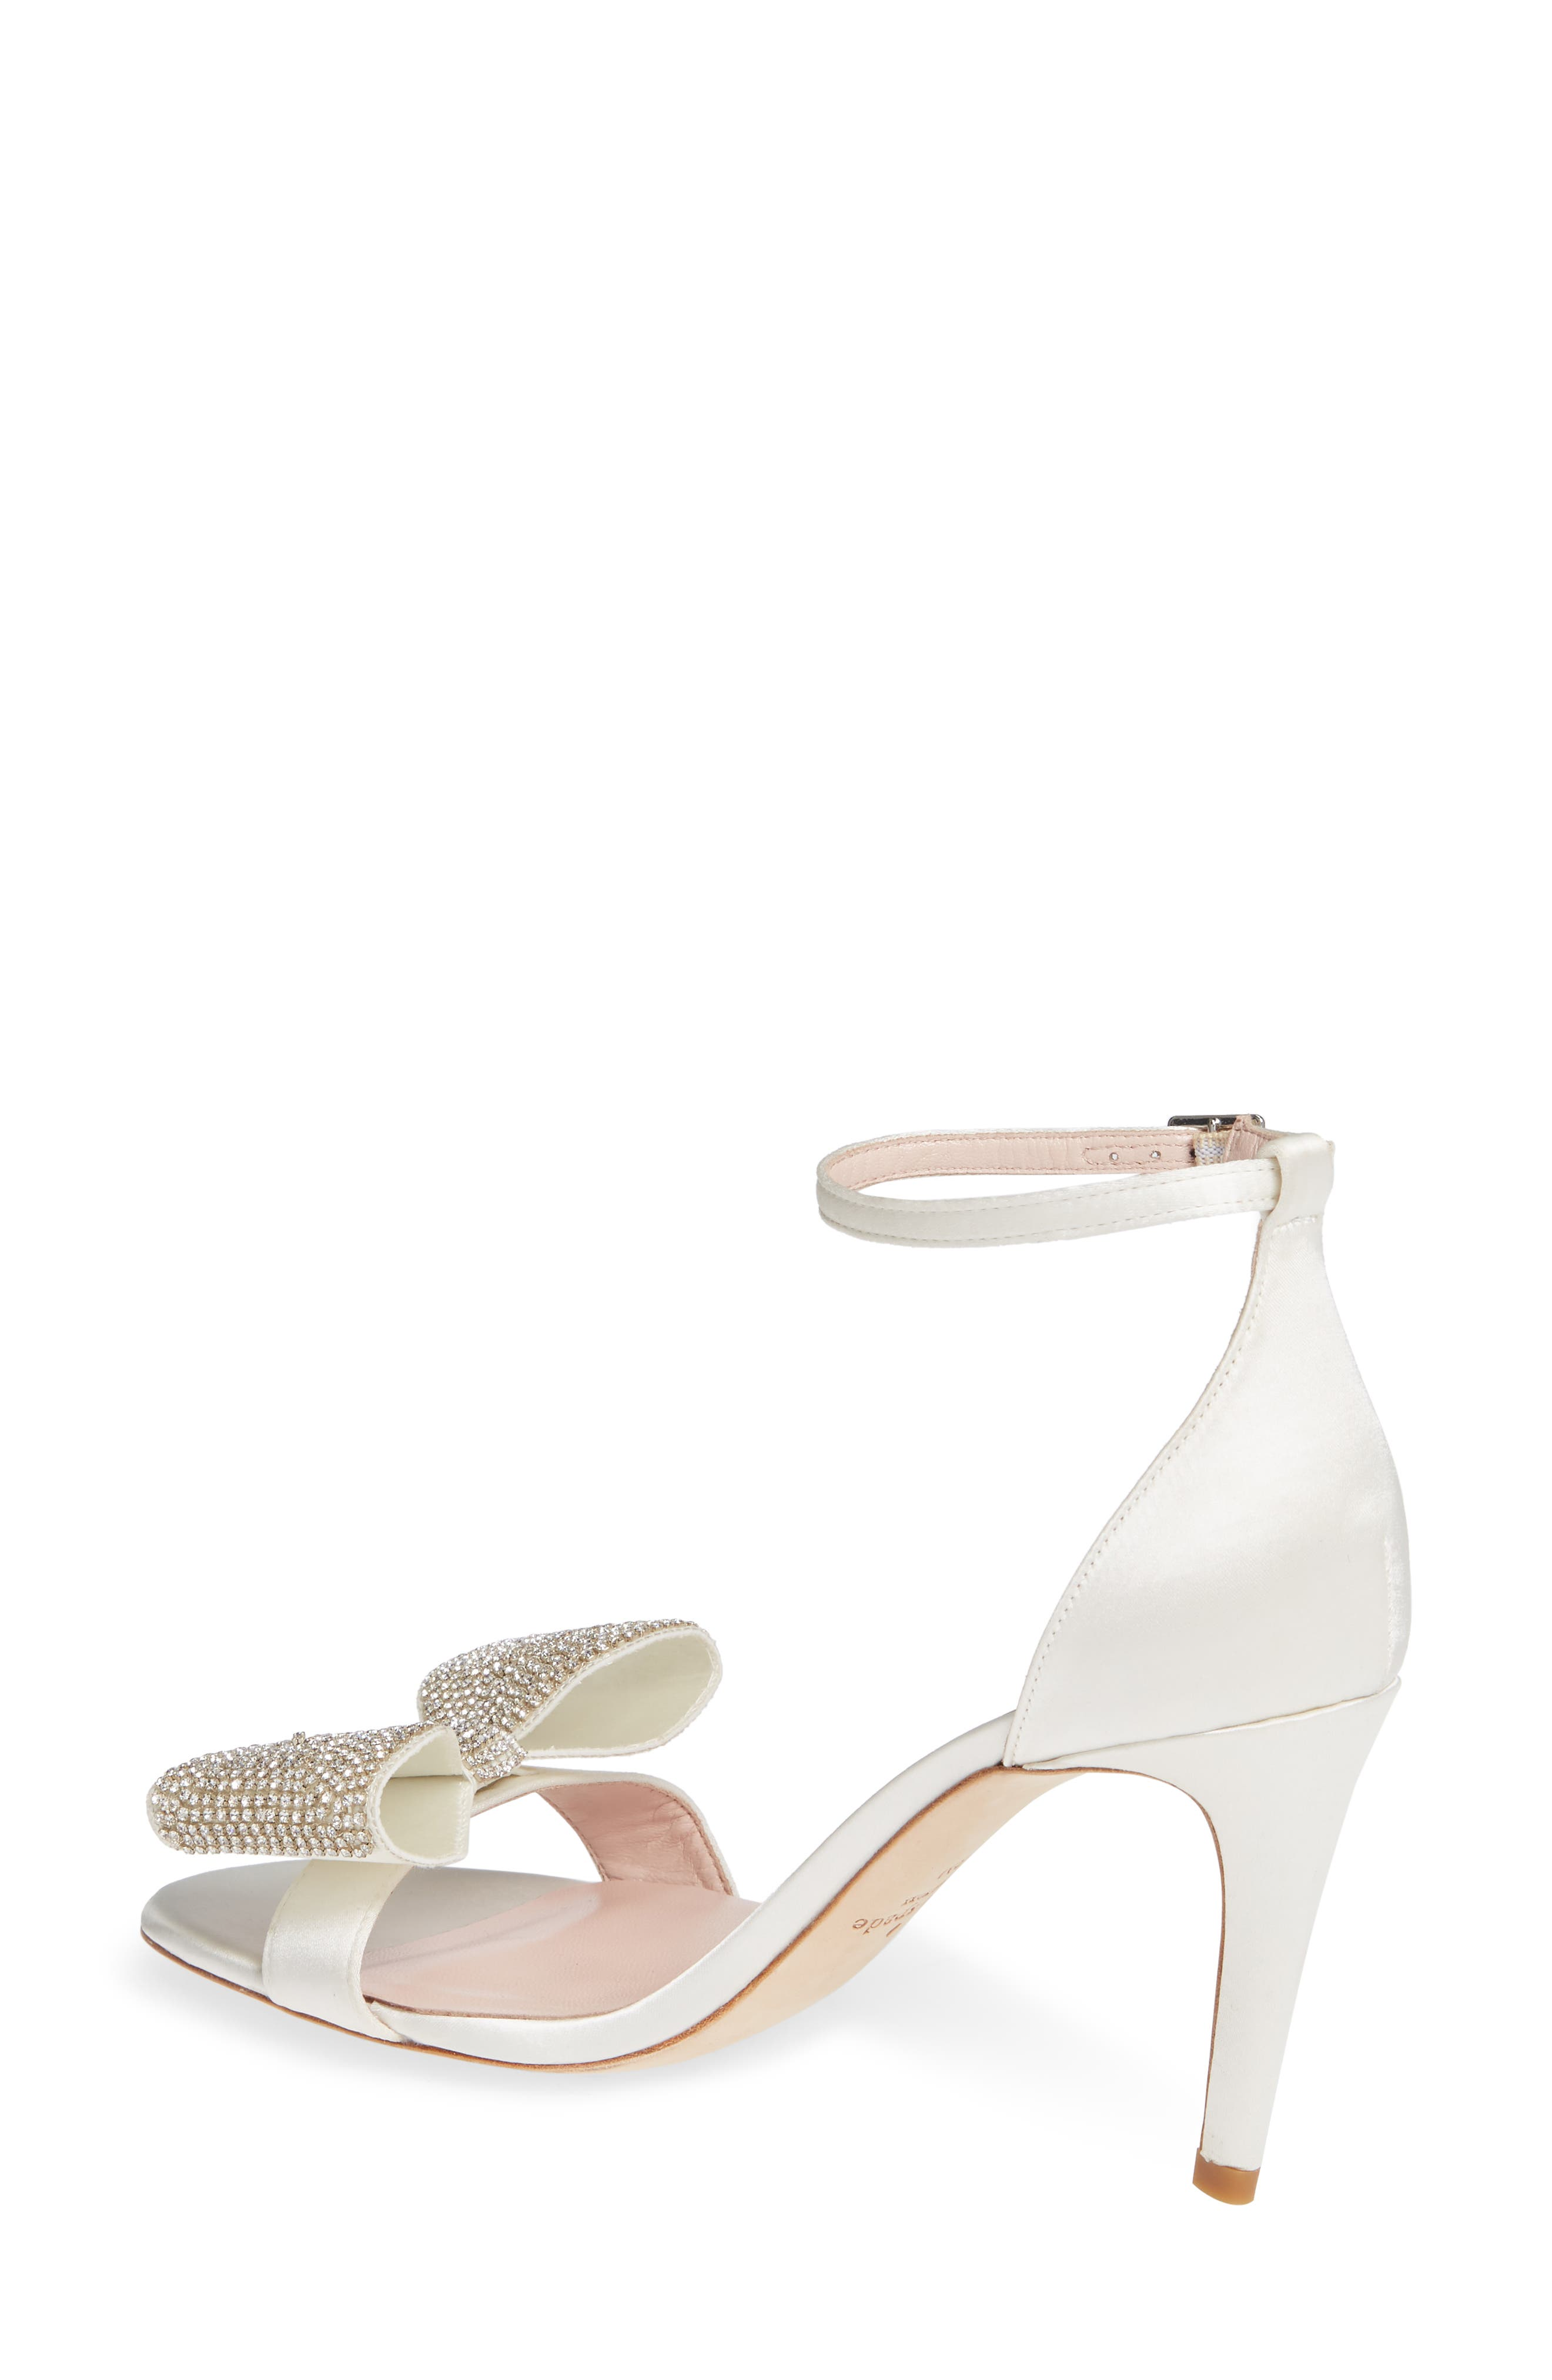 gweneth crystal bow ankle strap sandal,                             Alternate thumbnail 2, color,                             900